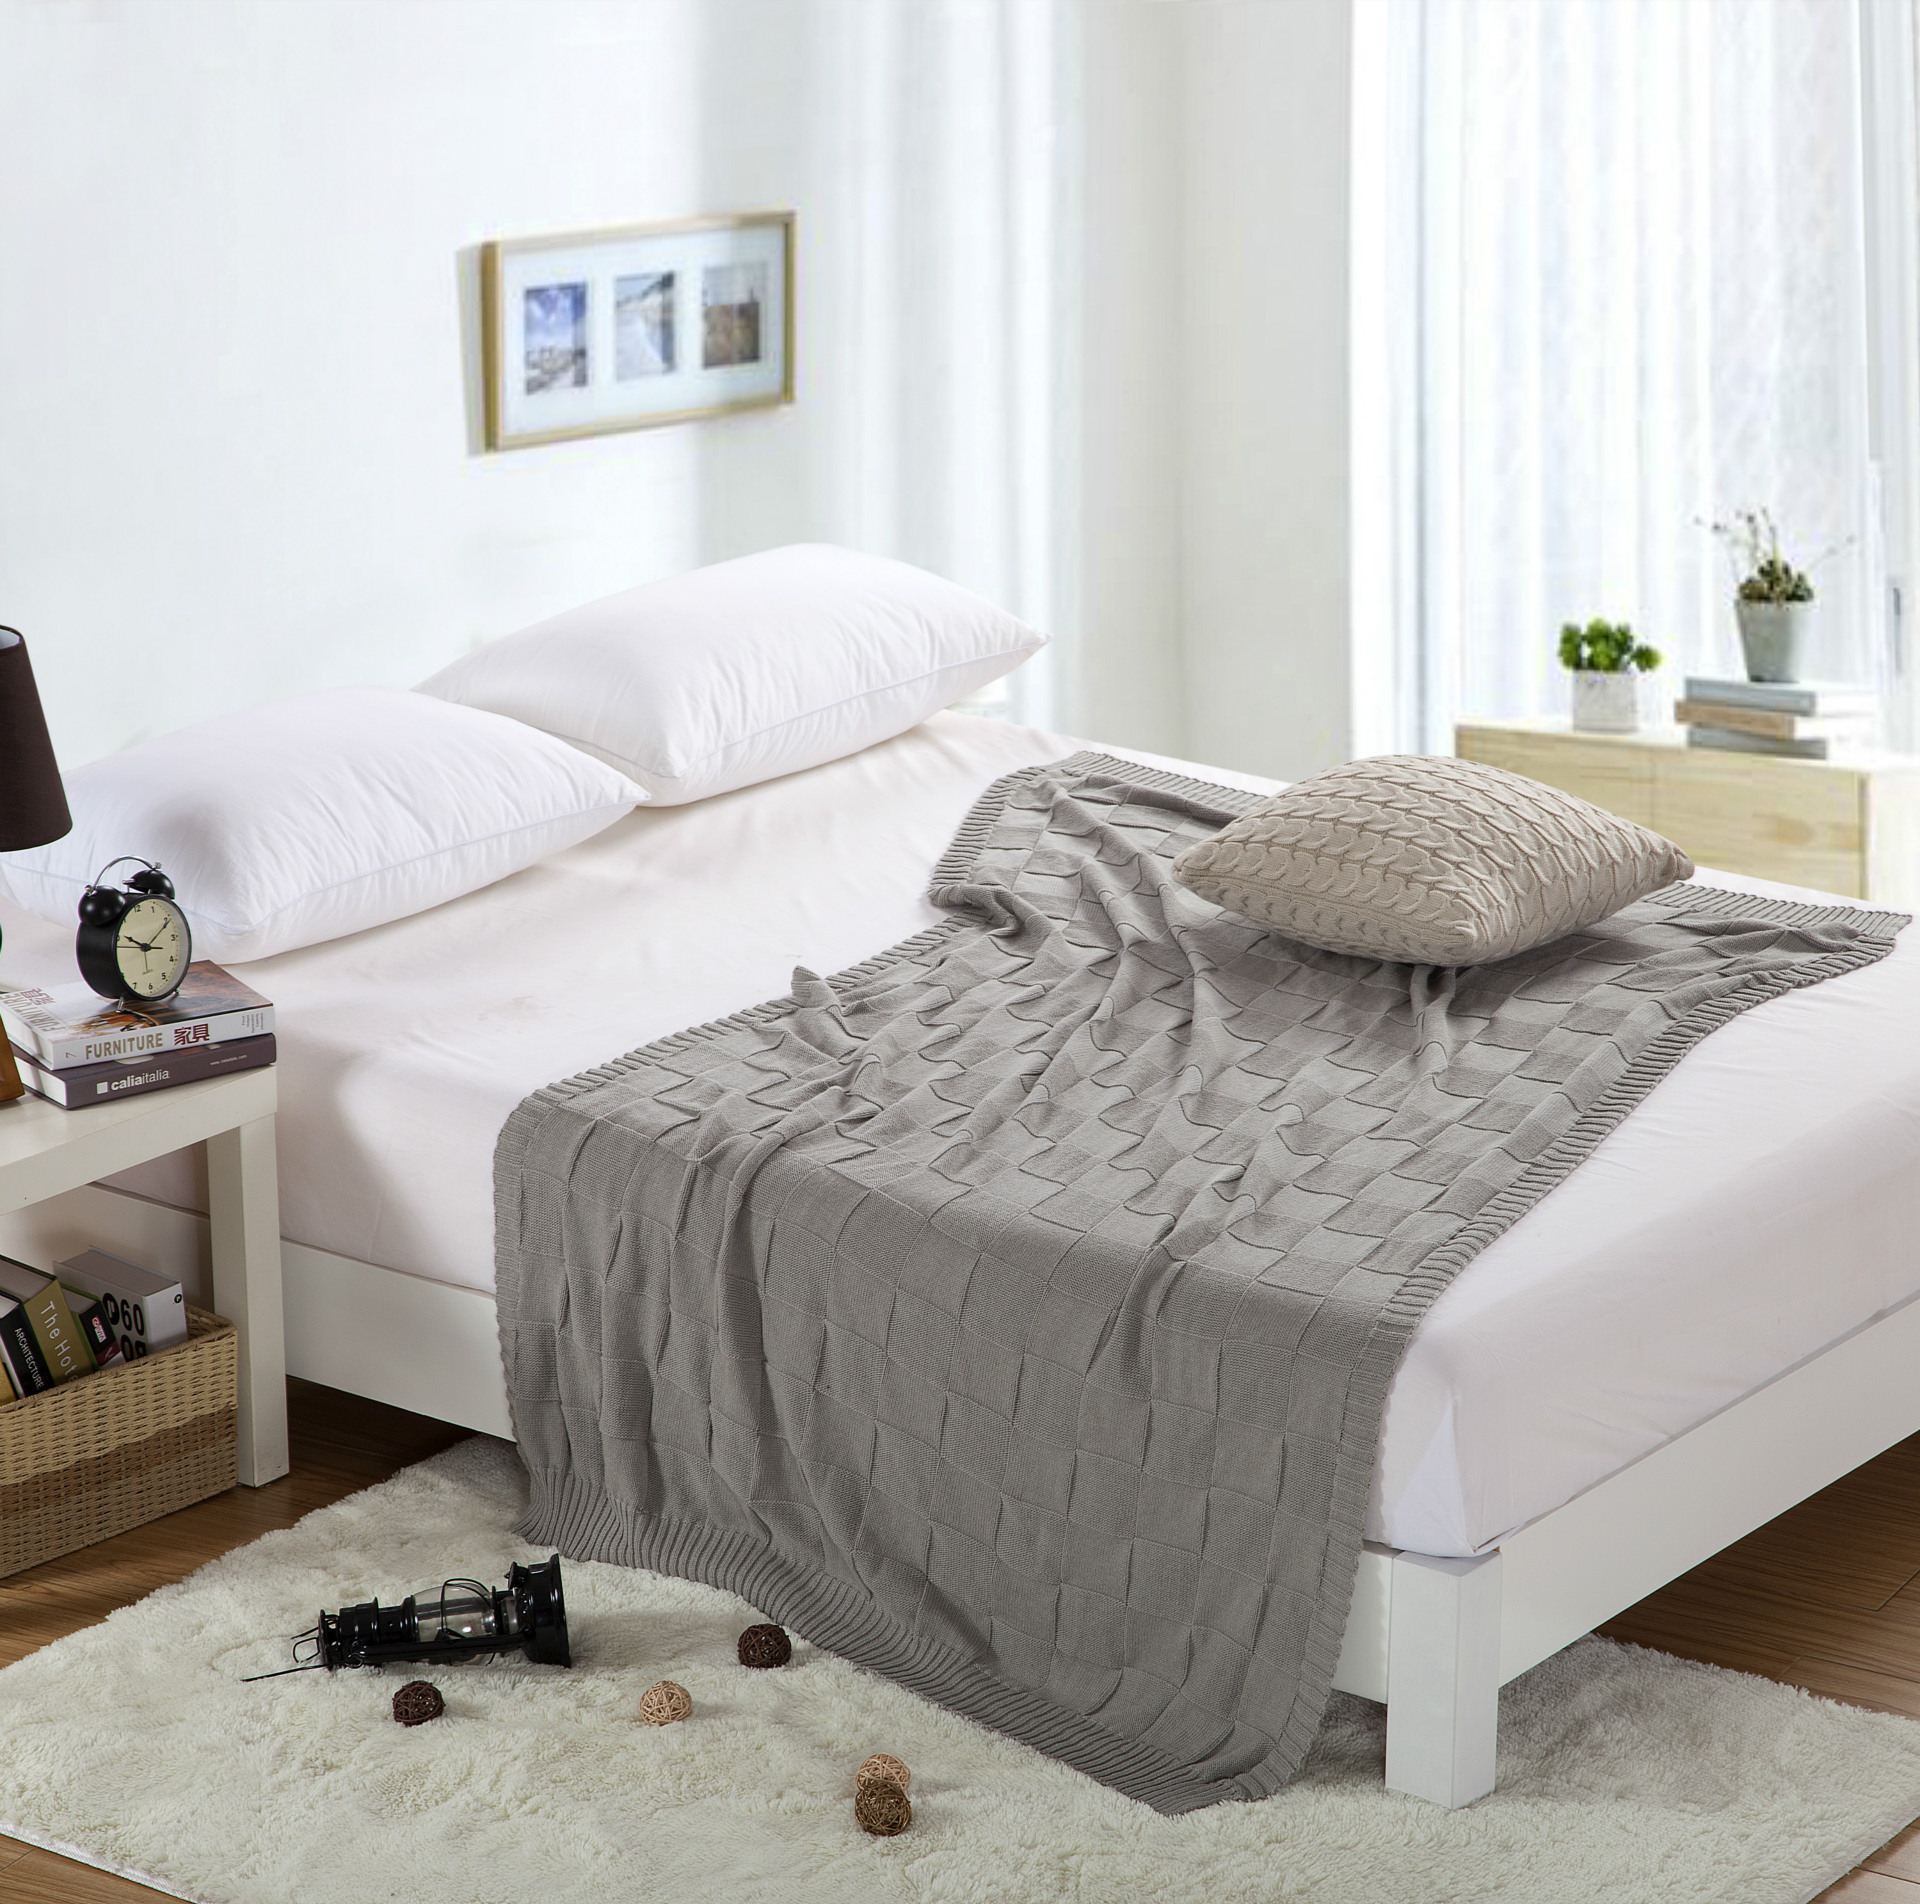 100% Cotton Plaid Bedspread Explosion White Grey Knitted Throw ...